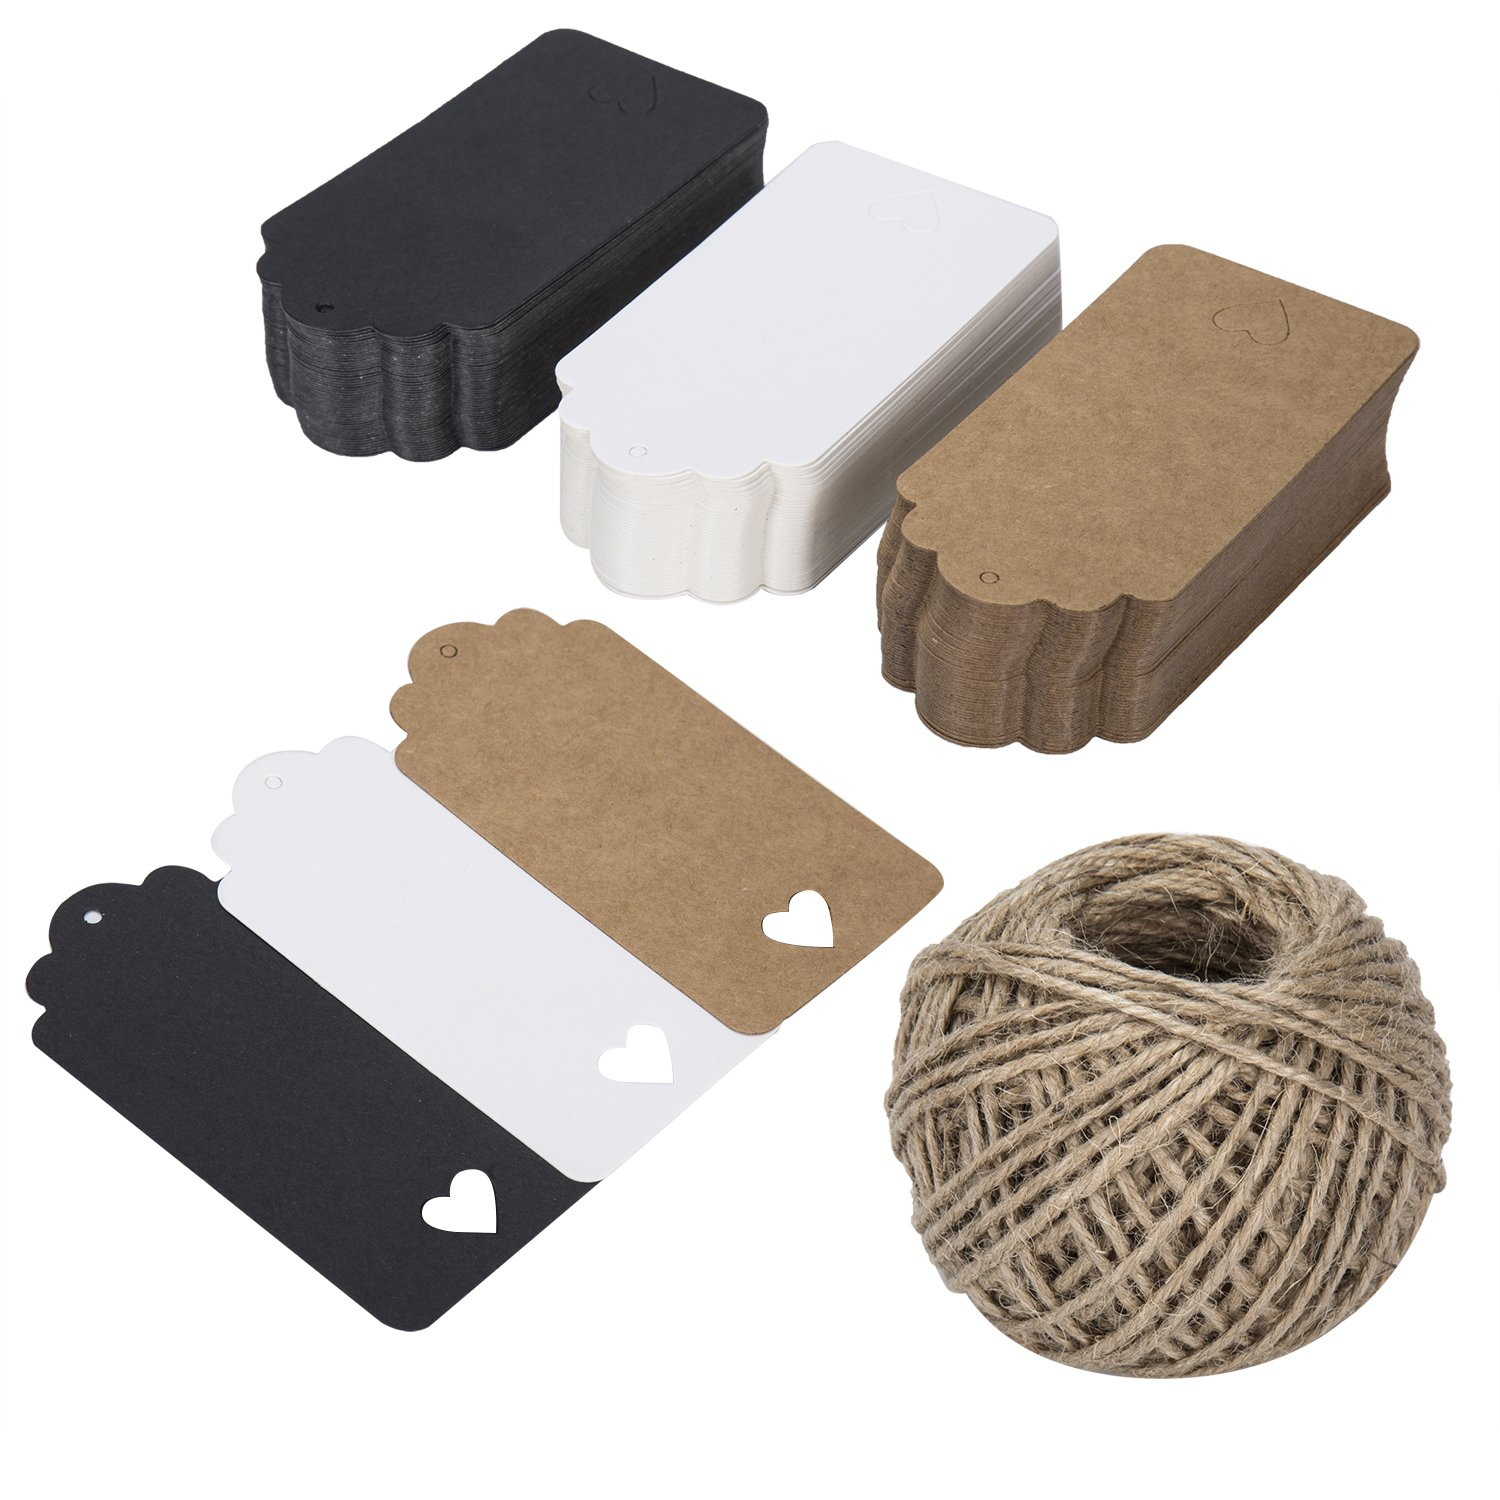 Kraft Gift Labels Tags Z/&S Groups 150 PCS Paper Tags with String for Birthday Party Wedding Favors Rectangular 3 Colors Kraft Craft Tags with Love Heart Natural Twine 131 Feet